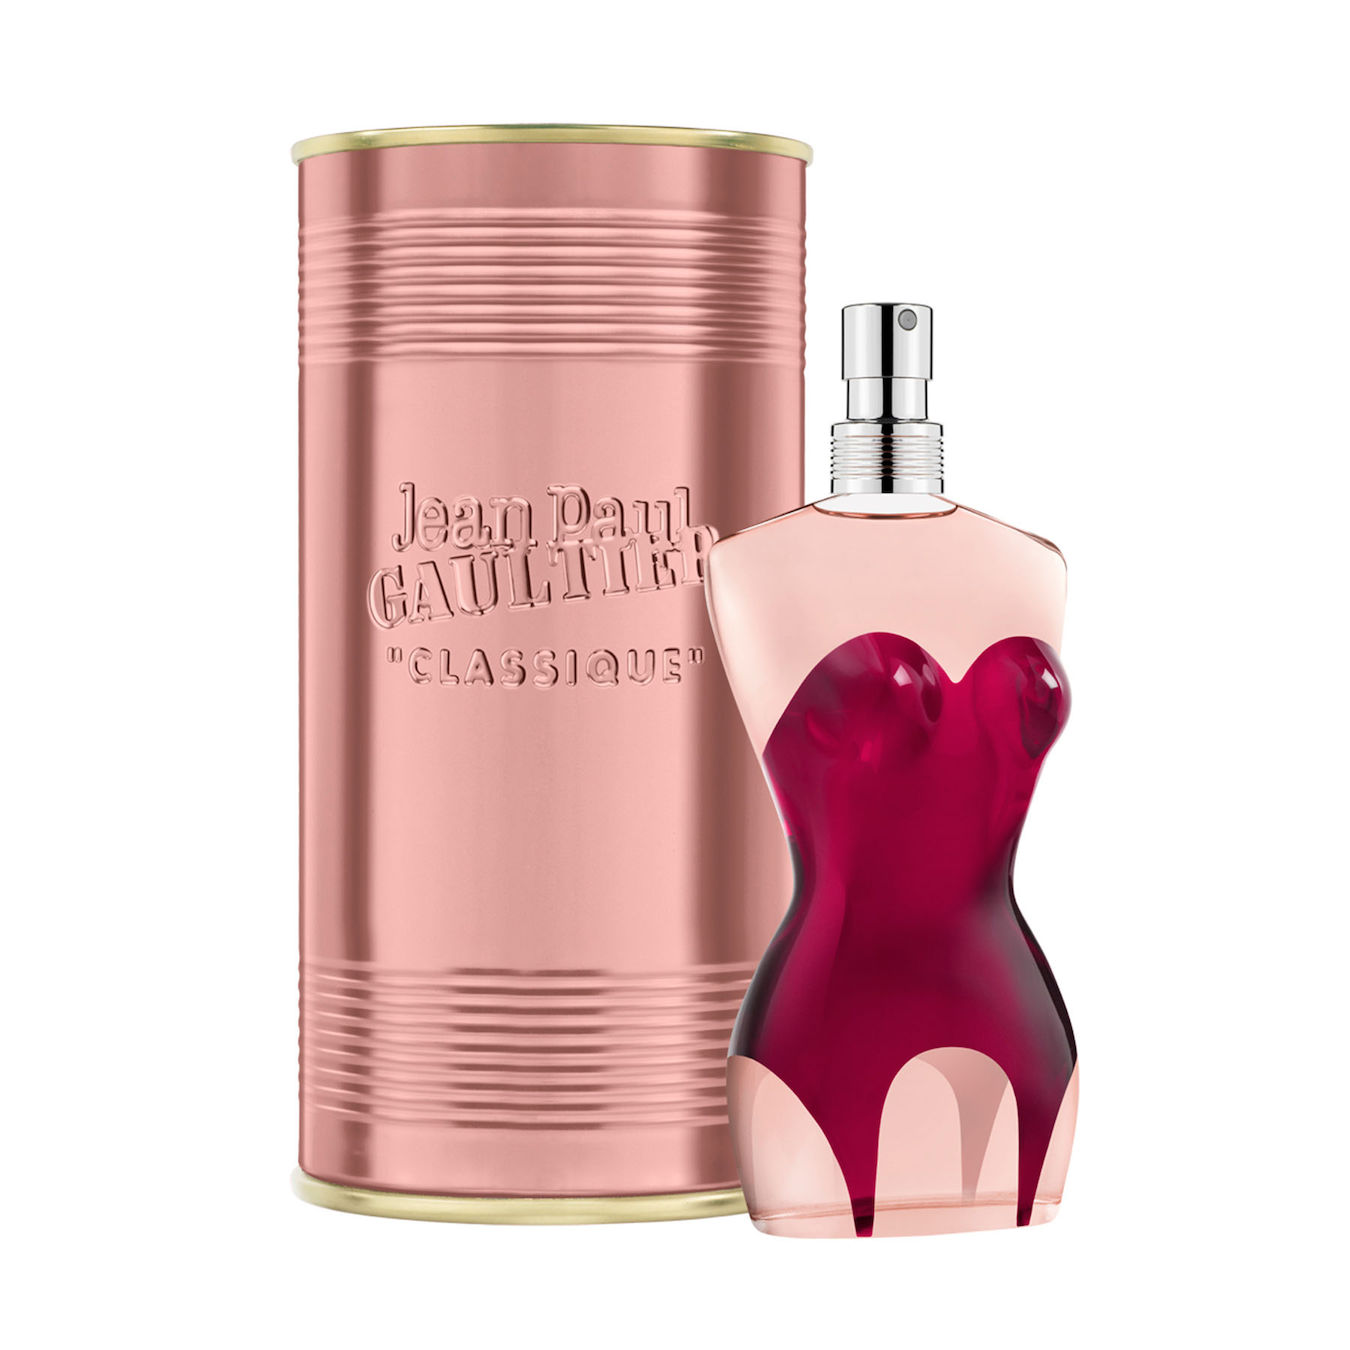 classique eau de parfum collector 2017 jean paul gaultier perfume a fragrance for women 2017